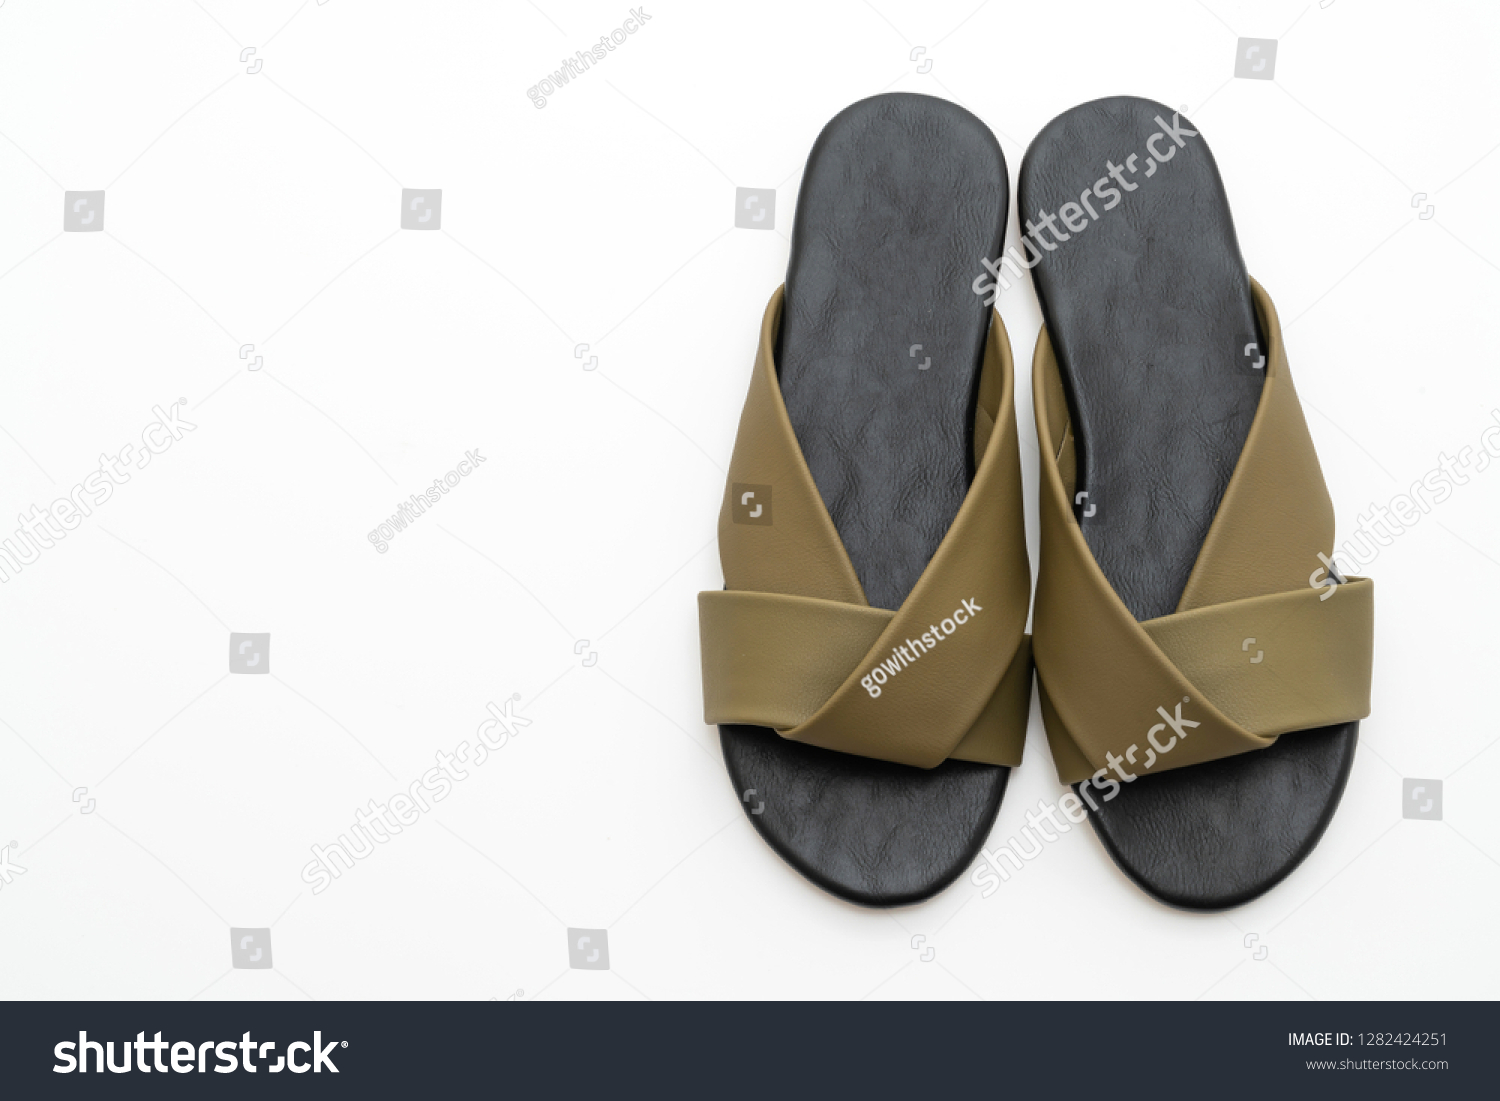 78f2ad3fc beautiful fashion female and woman leather sandals isolated on white  background